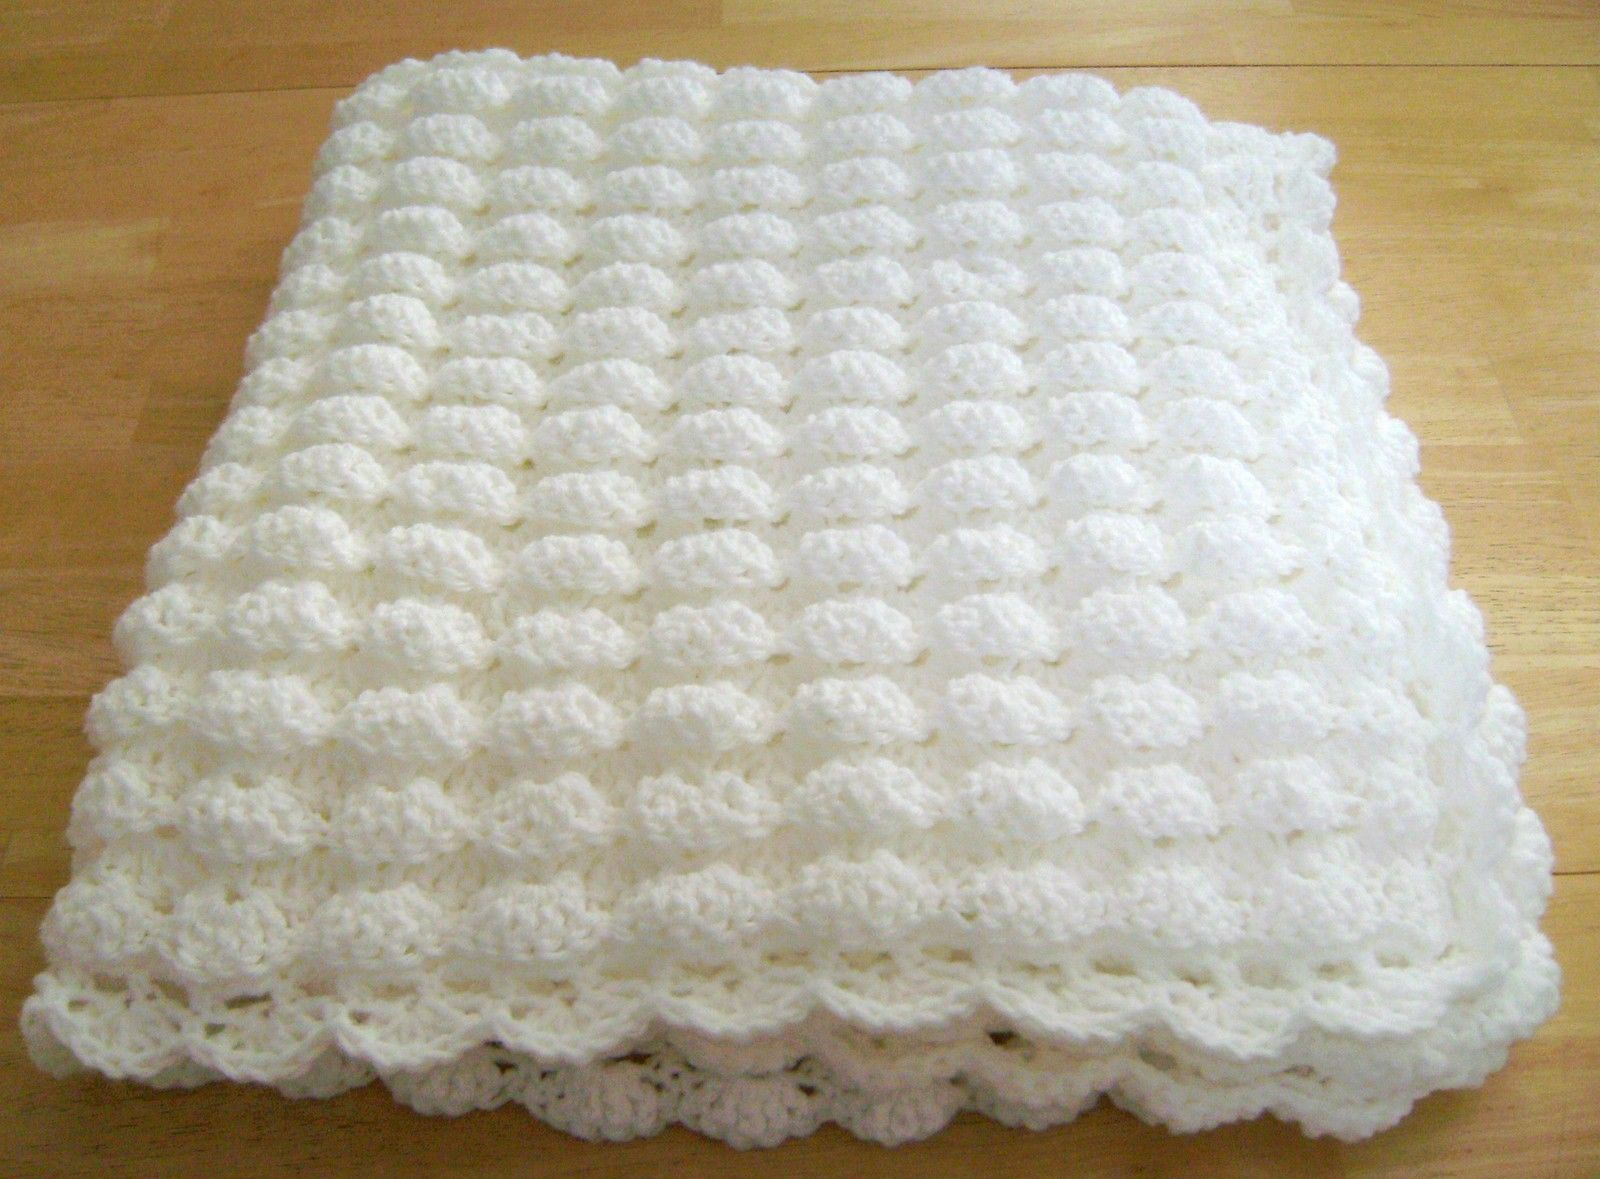 Crochet-White-Baby-Blanket-Shell-Pattern-Handmade-Girl.jpg 1,600 ...